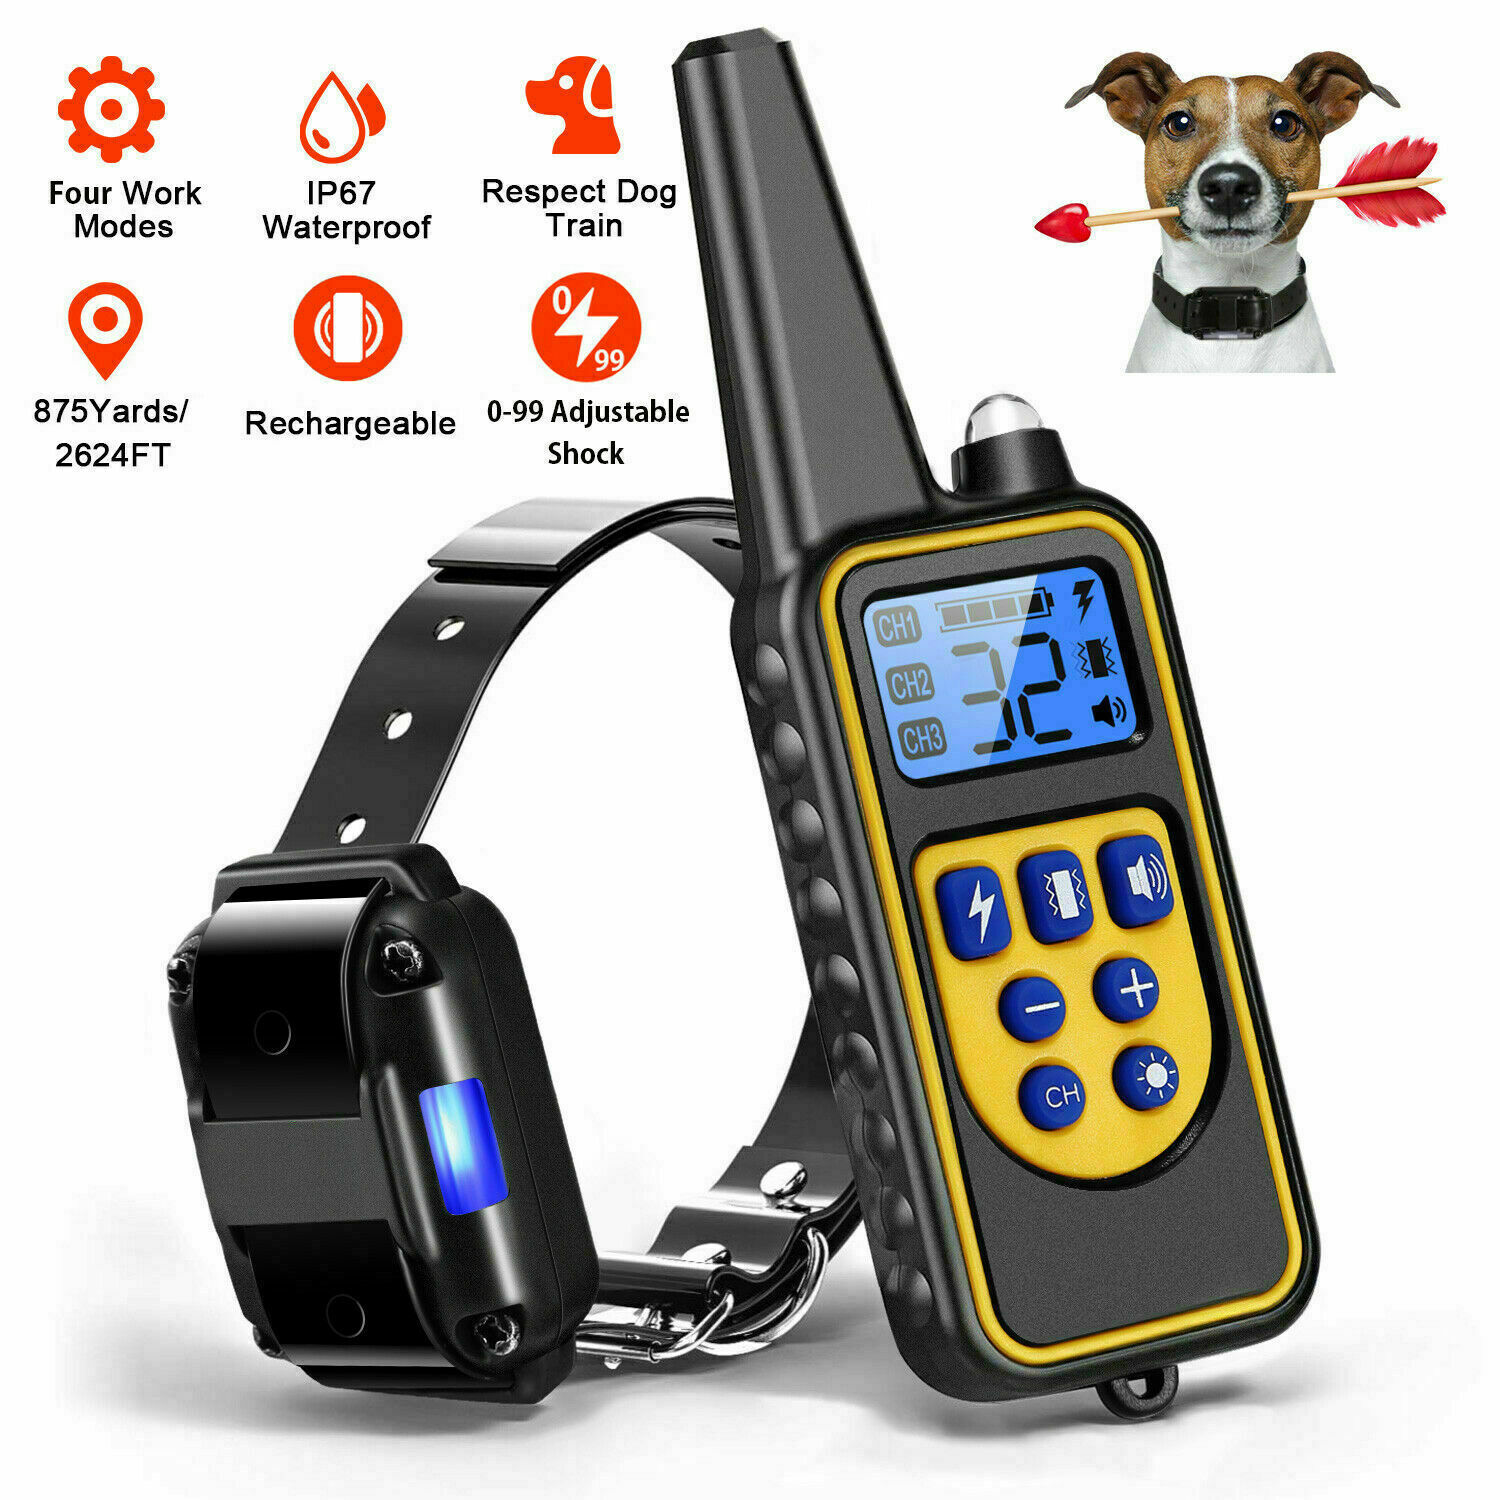 LED Dog Shock Training Collar With Remote Pet Anti Bark Rechargeable Remote Control Waterproof IP67 875 Yards